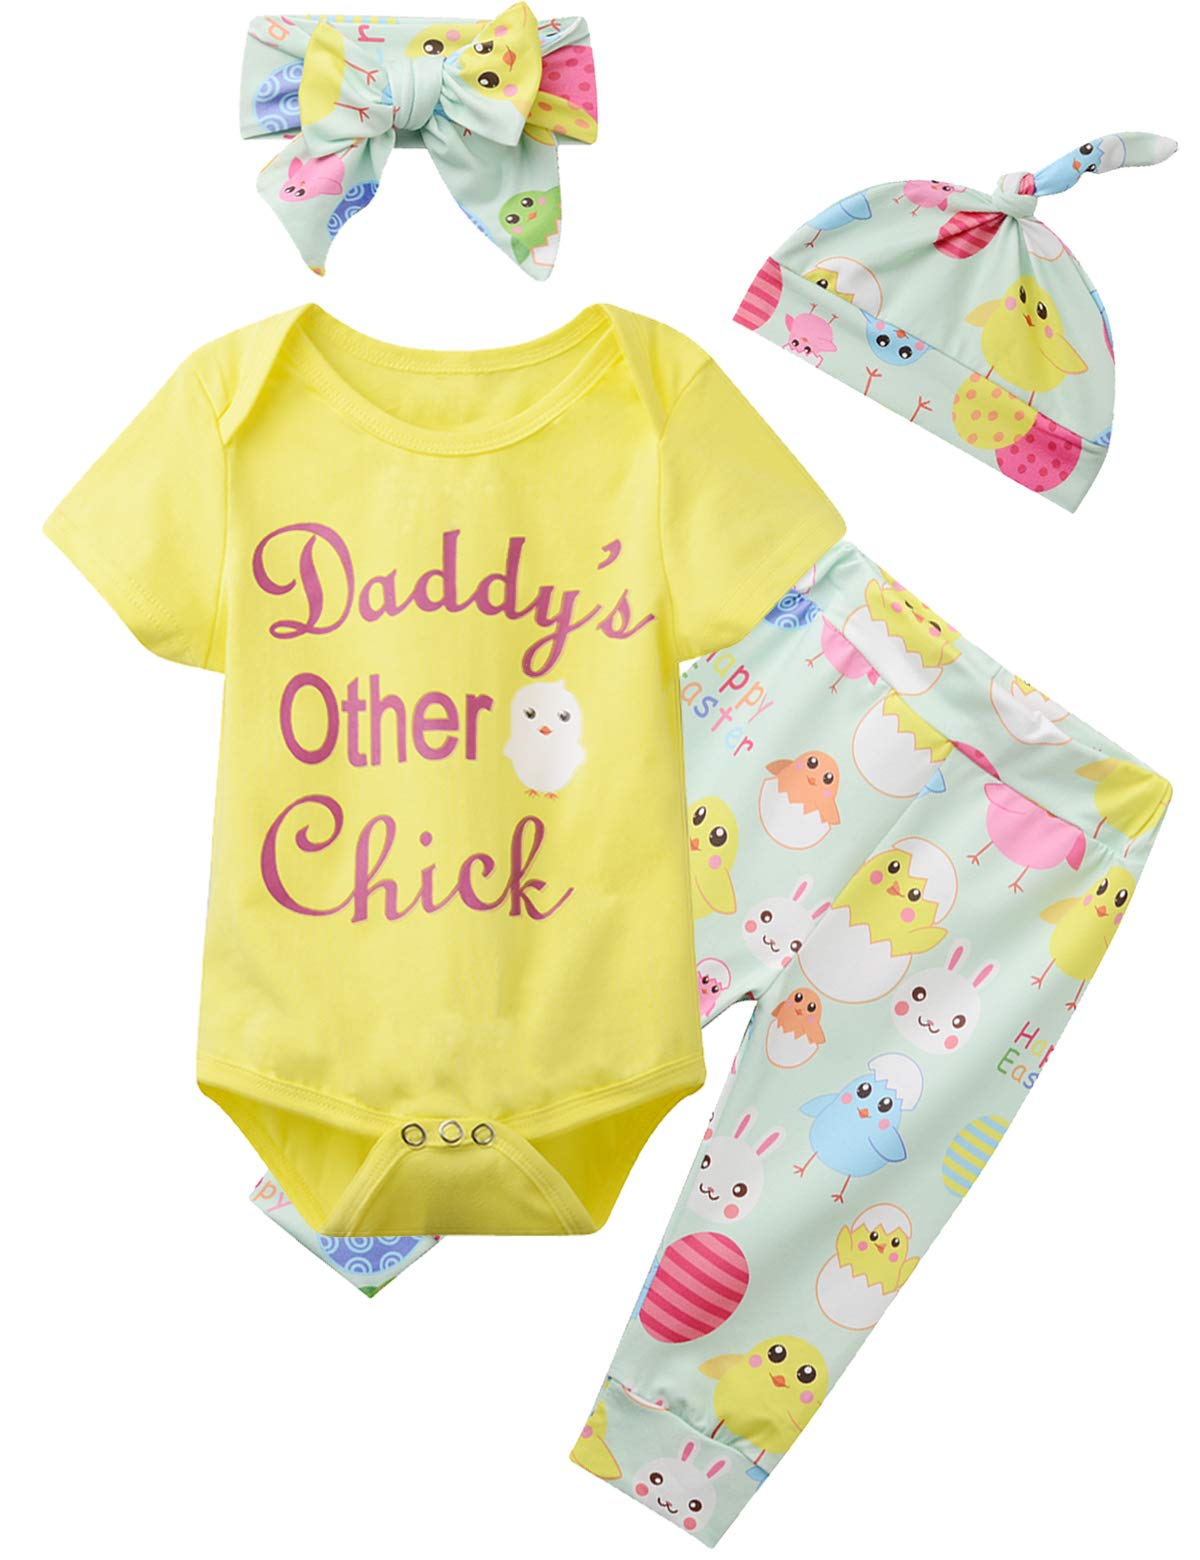 Baby Girls Easter Day Outfit Set Daddy's Other Chicks Romper